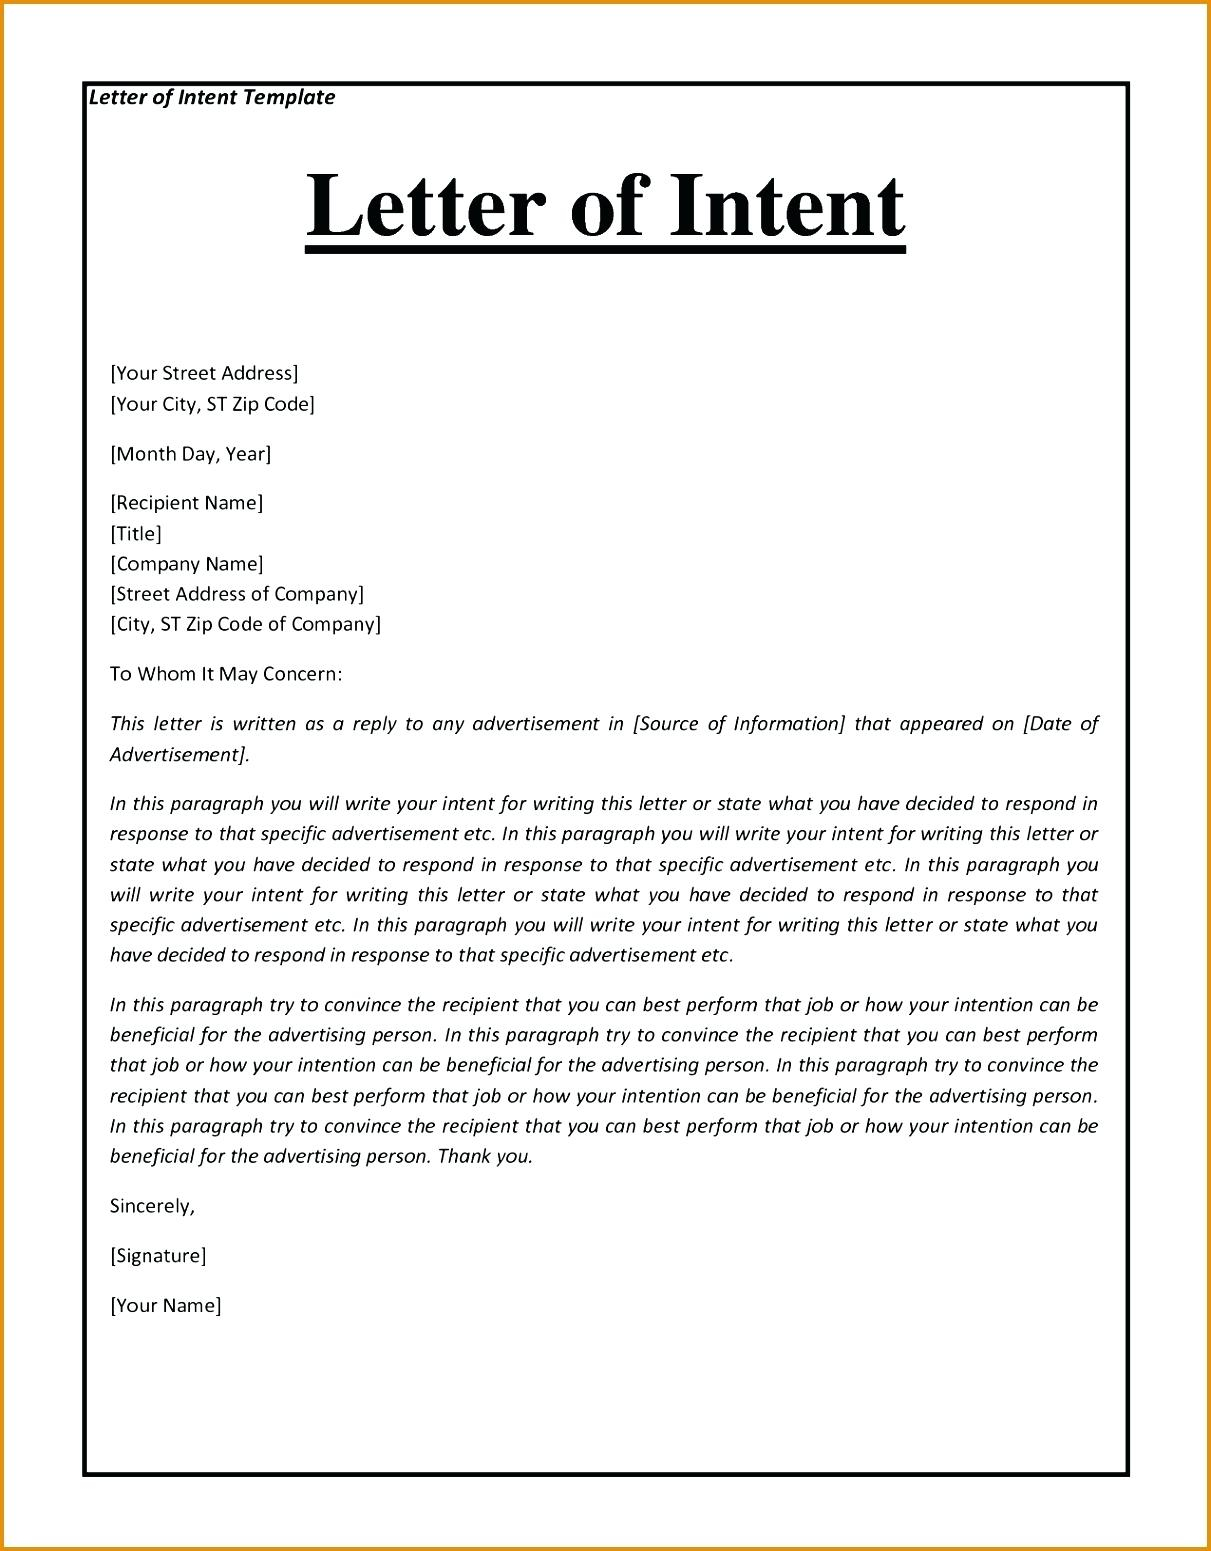 Letter Of Intent to Purchase Equipment Template - Letter T to Purchase Equipment High Resolution Template